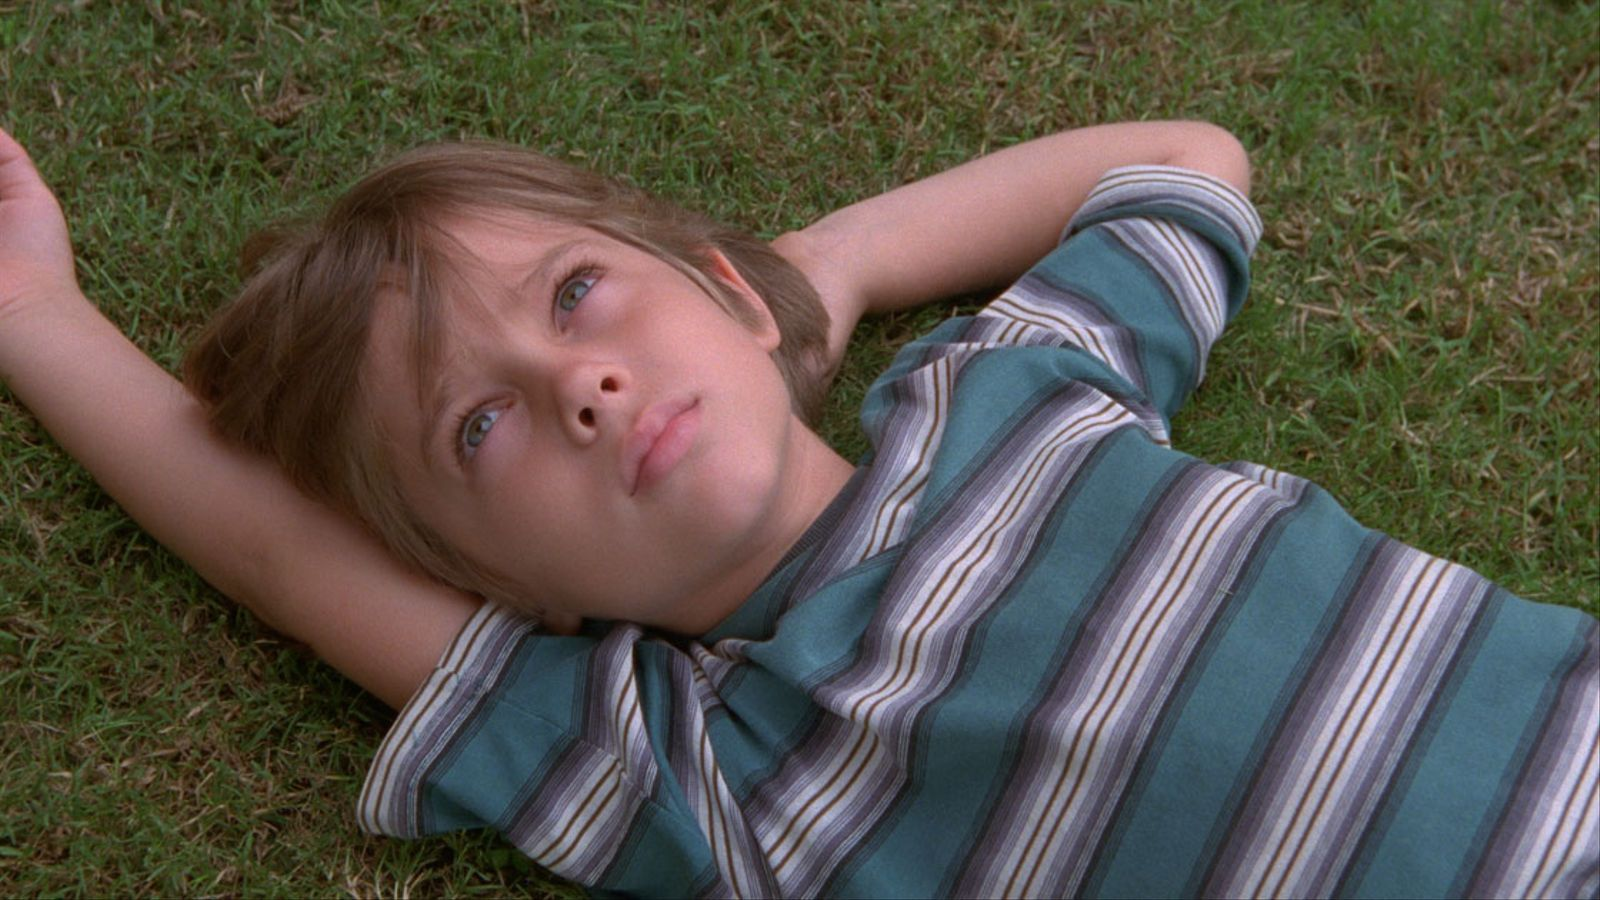 Tràiler de 'Boyhood', de Richard Linklater